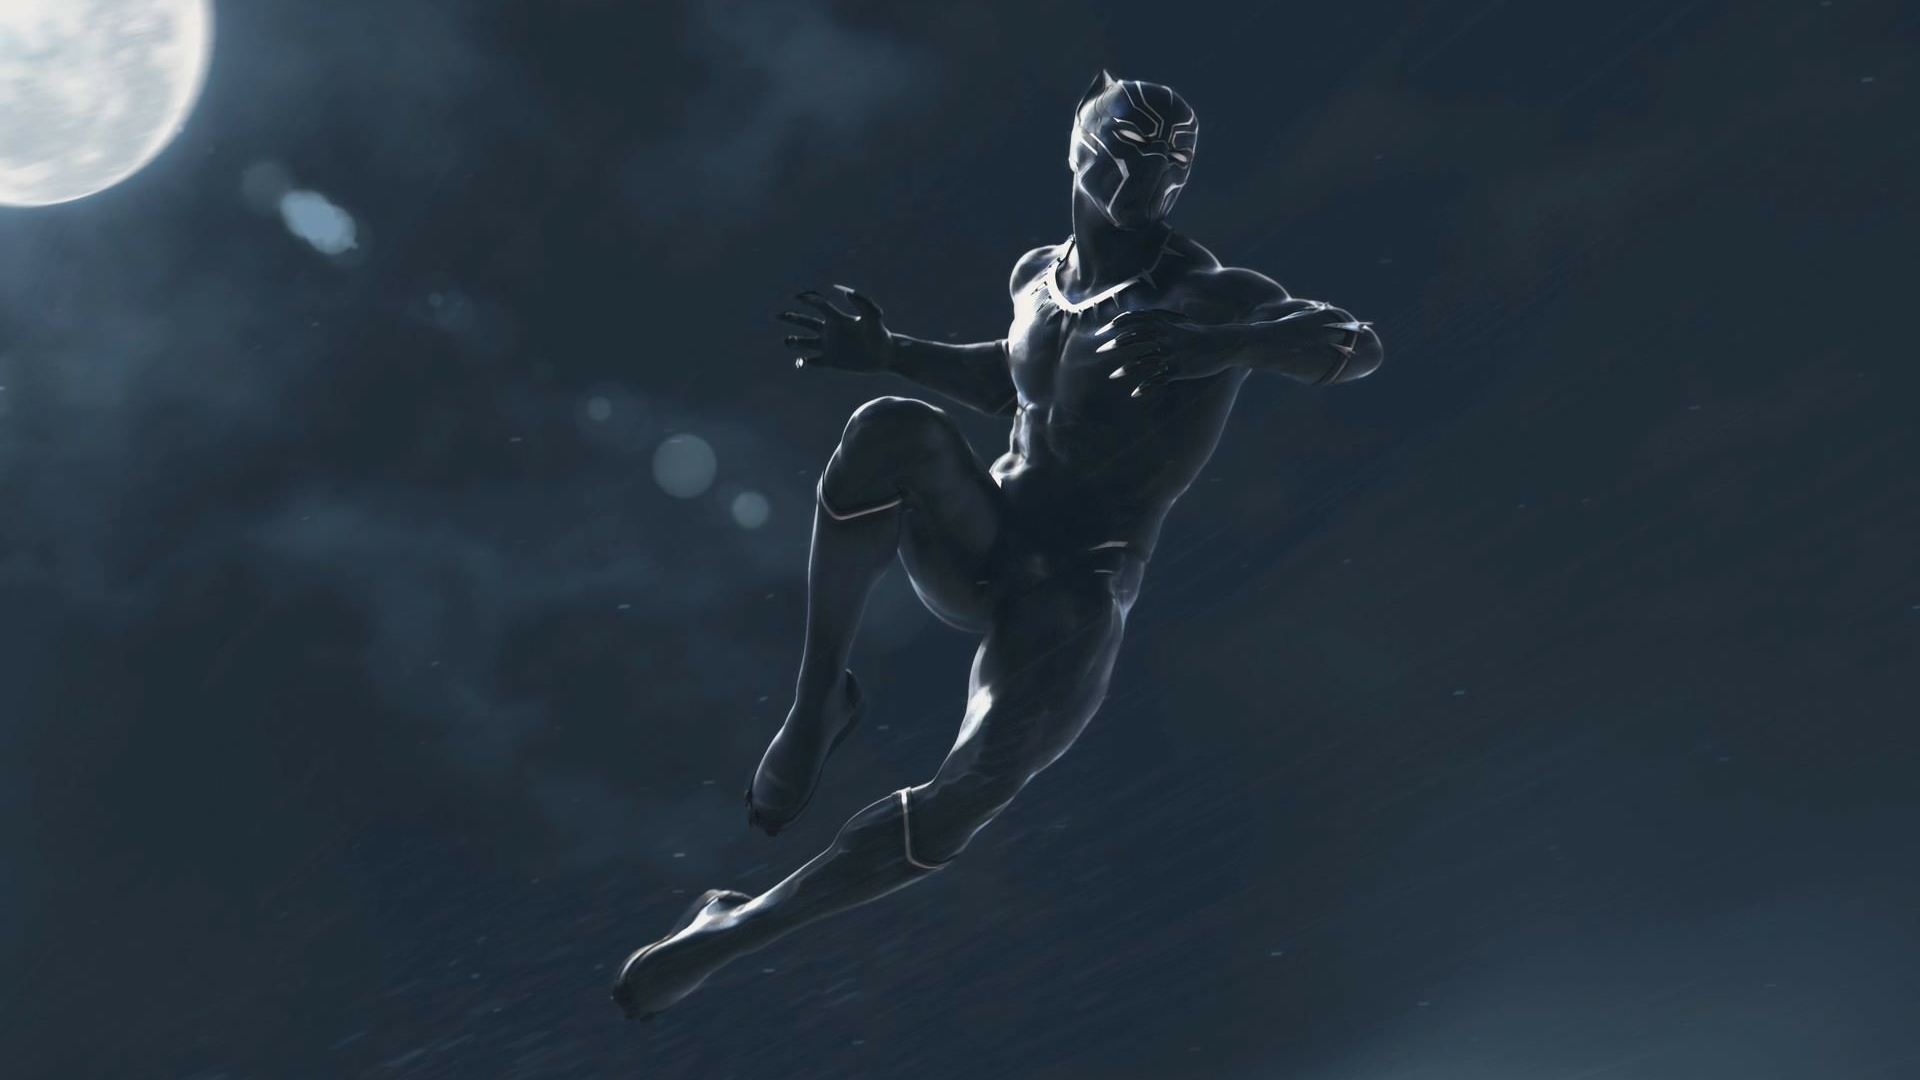 1920x1080 Black Panther Marvel Movie 1080p Laptop Full Hd Wallpaper Hd Movies 4k Wallpapers Images Photos And Background